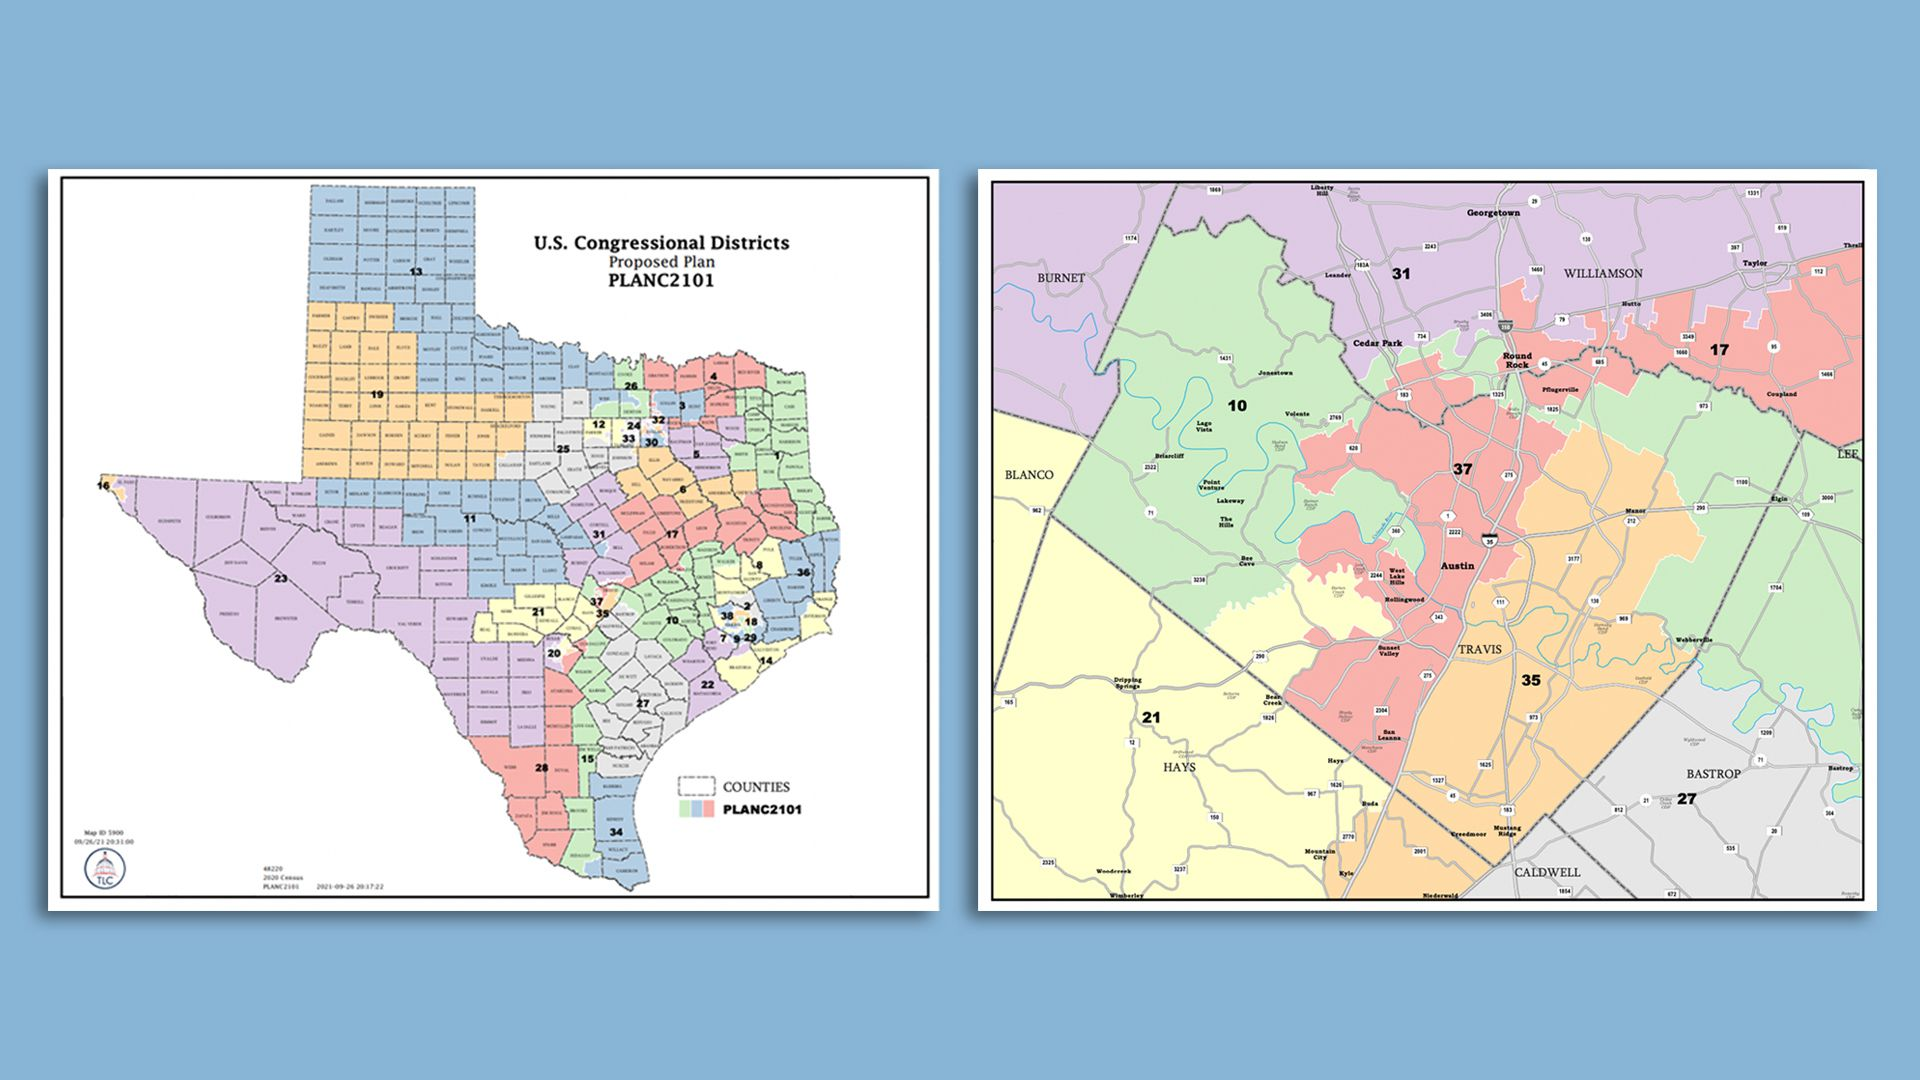 the proposed congressional maps for Texas